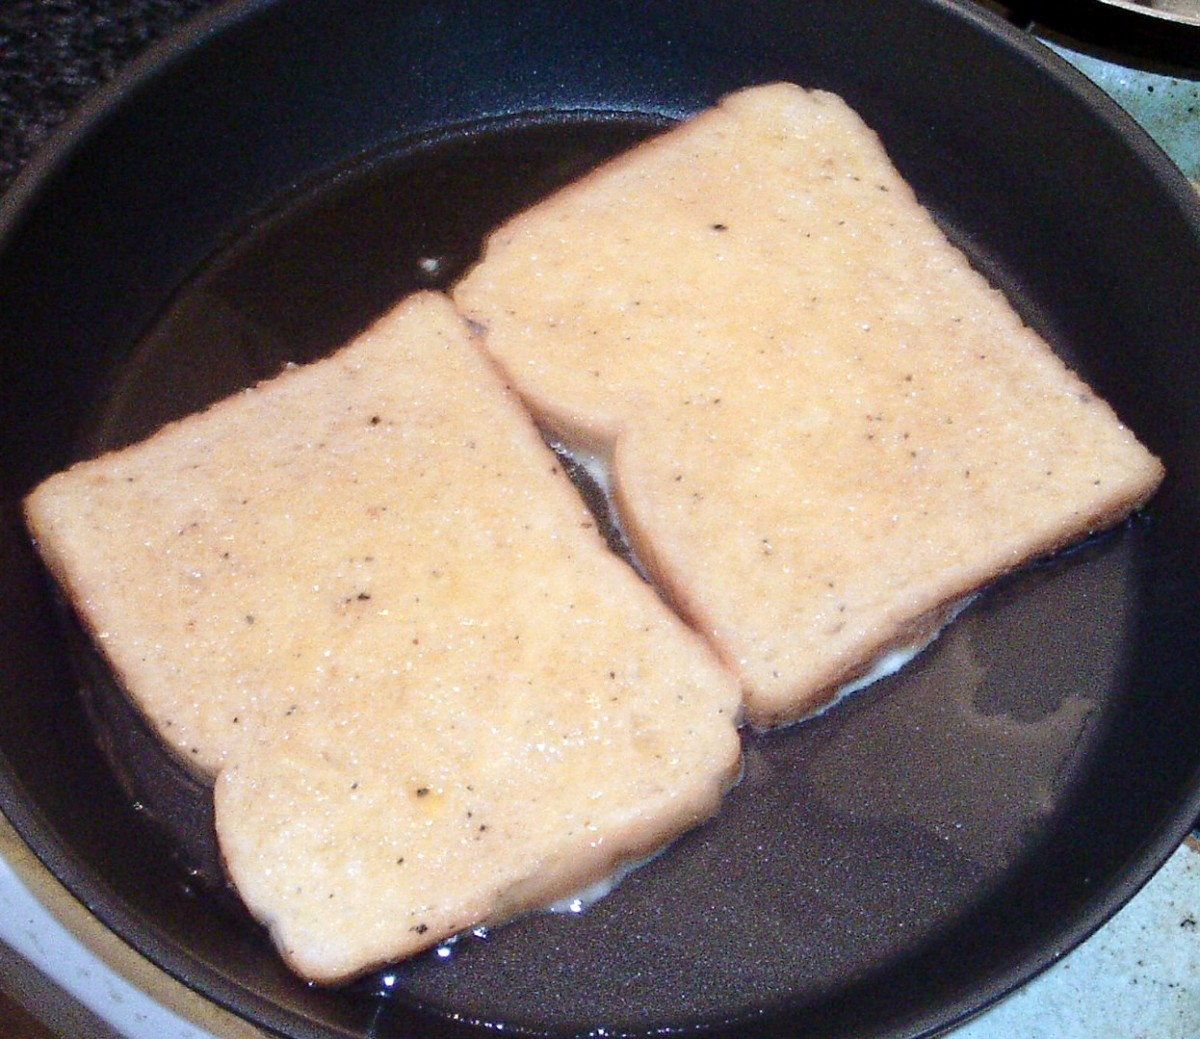 Eggy bread is added to frying pan